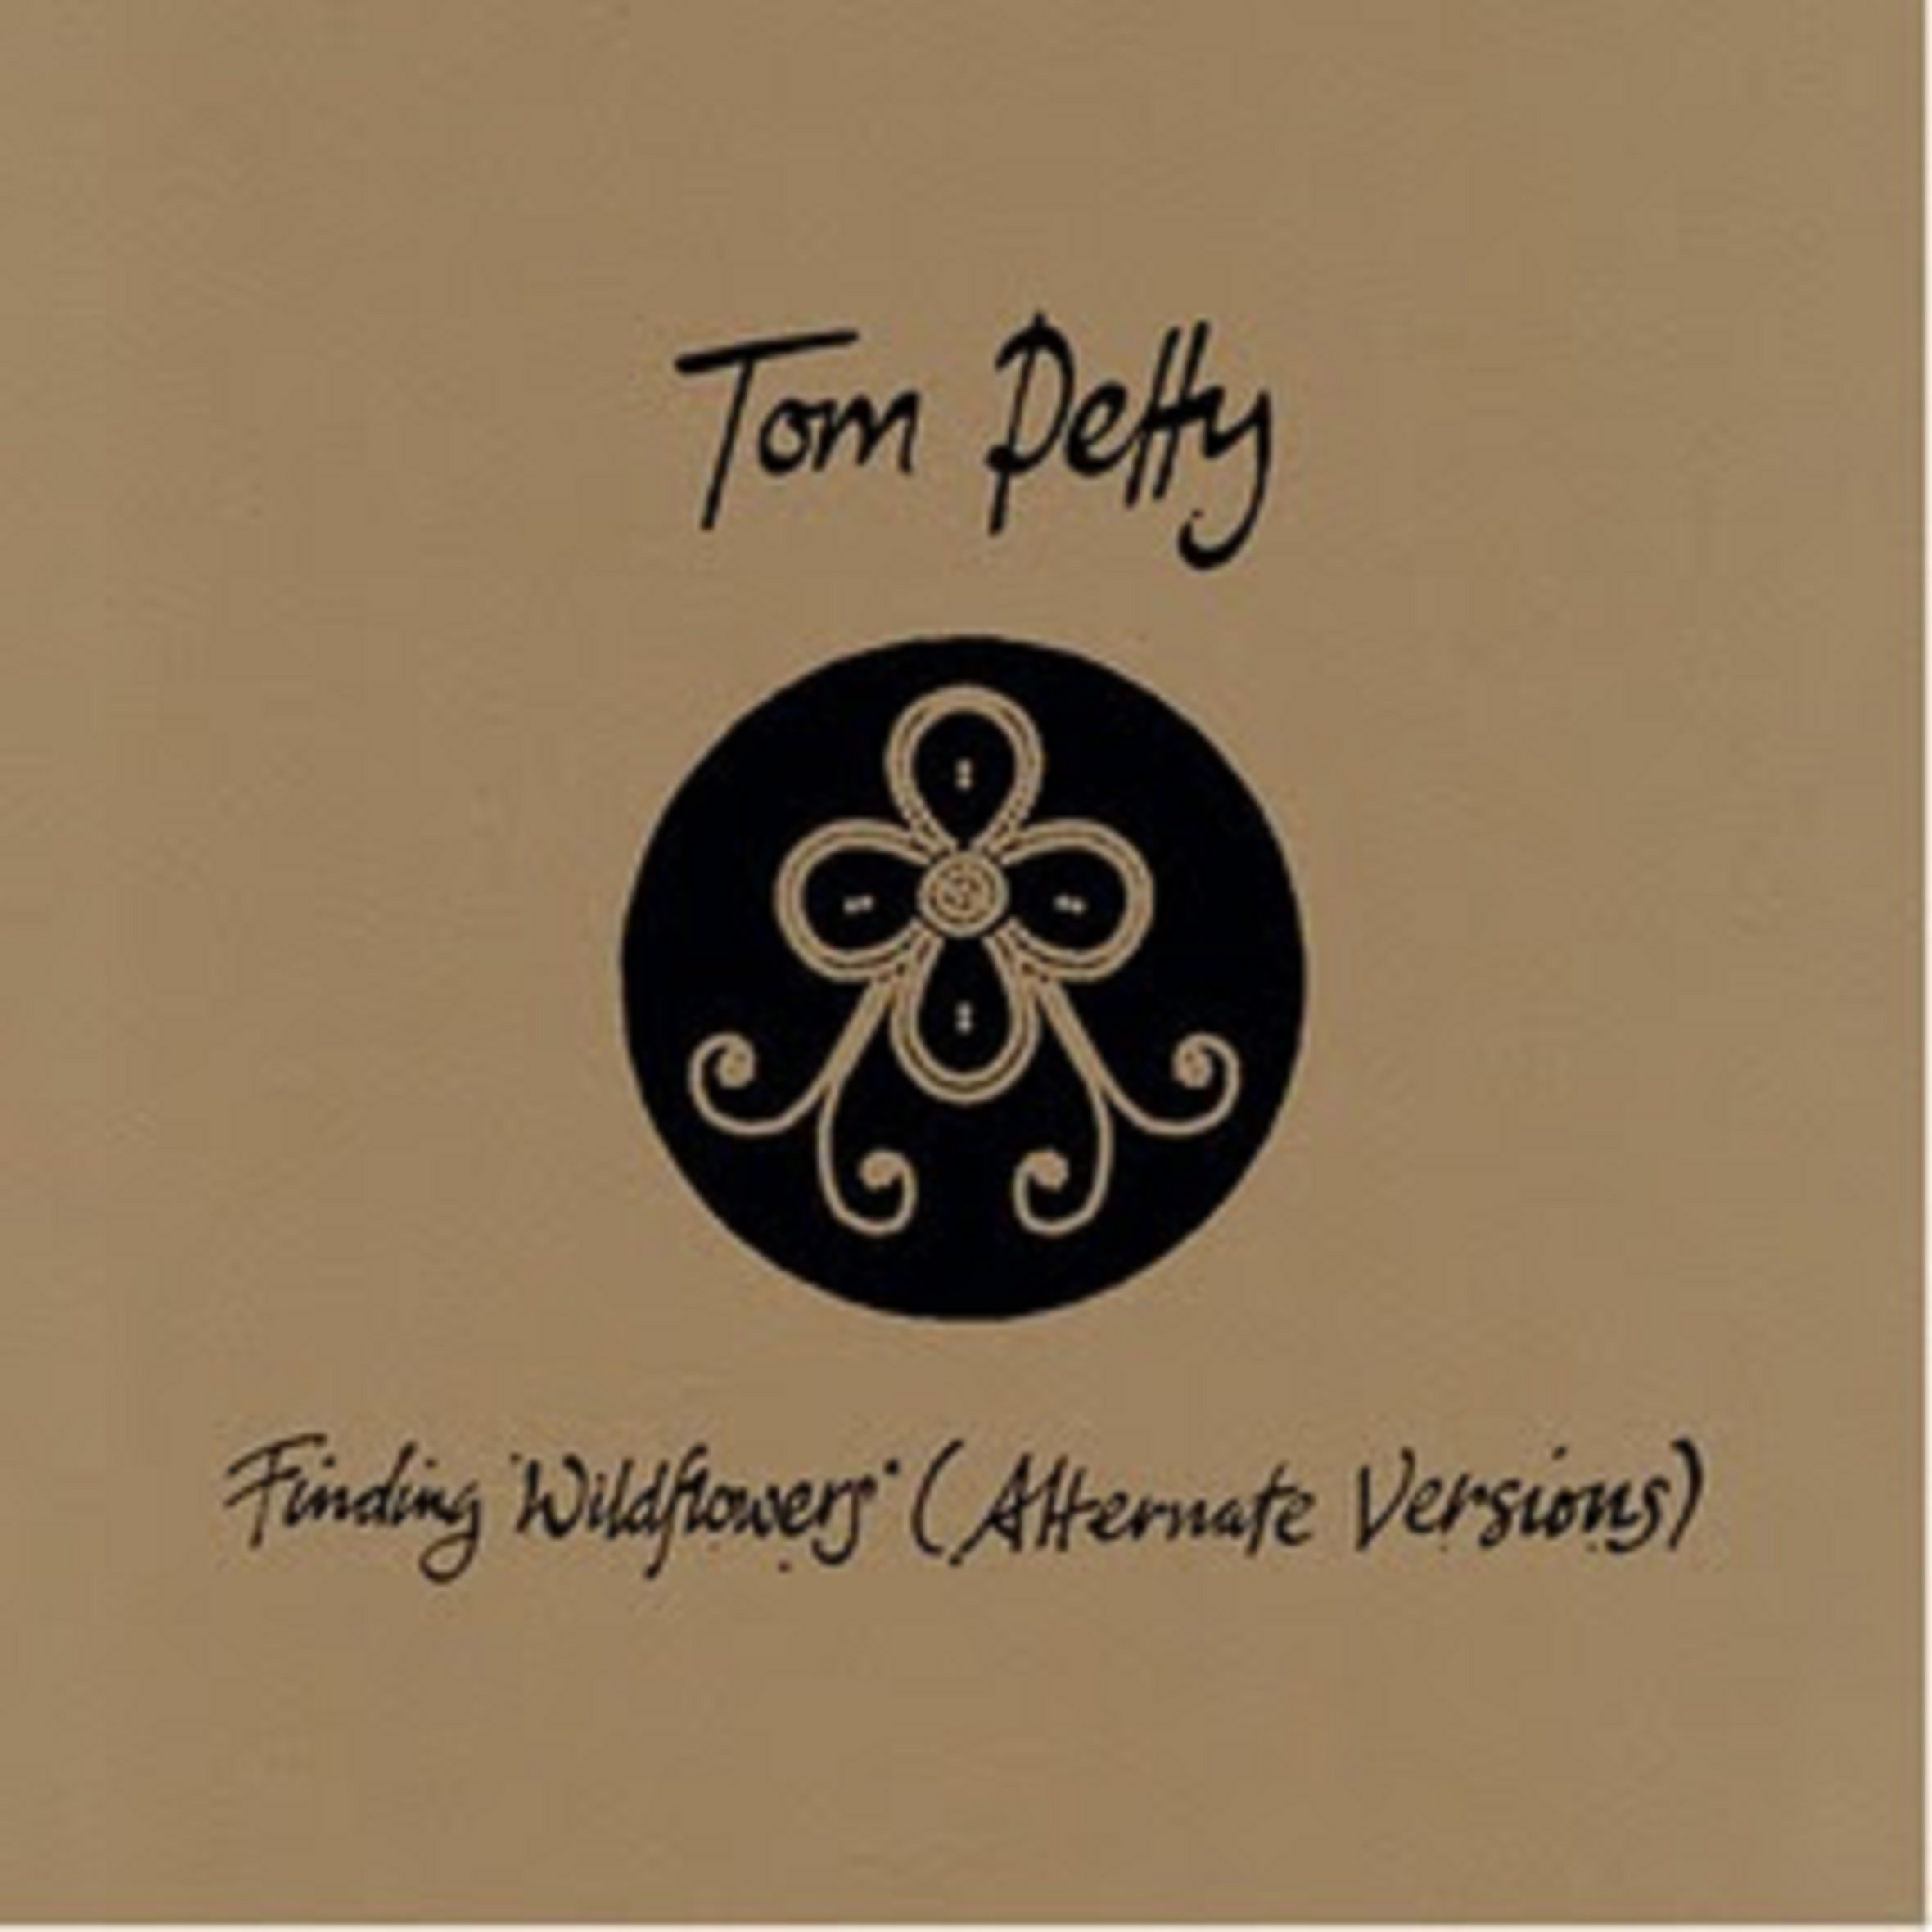 Tom Petty's Finding Wildflowers (Alternate Versions) out on digital streaming platforms